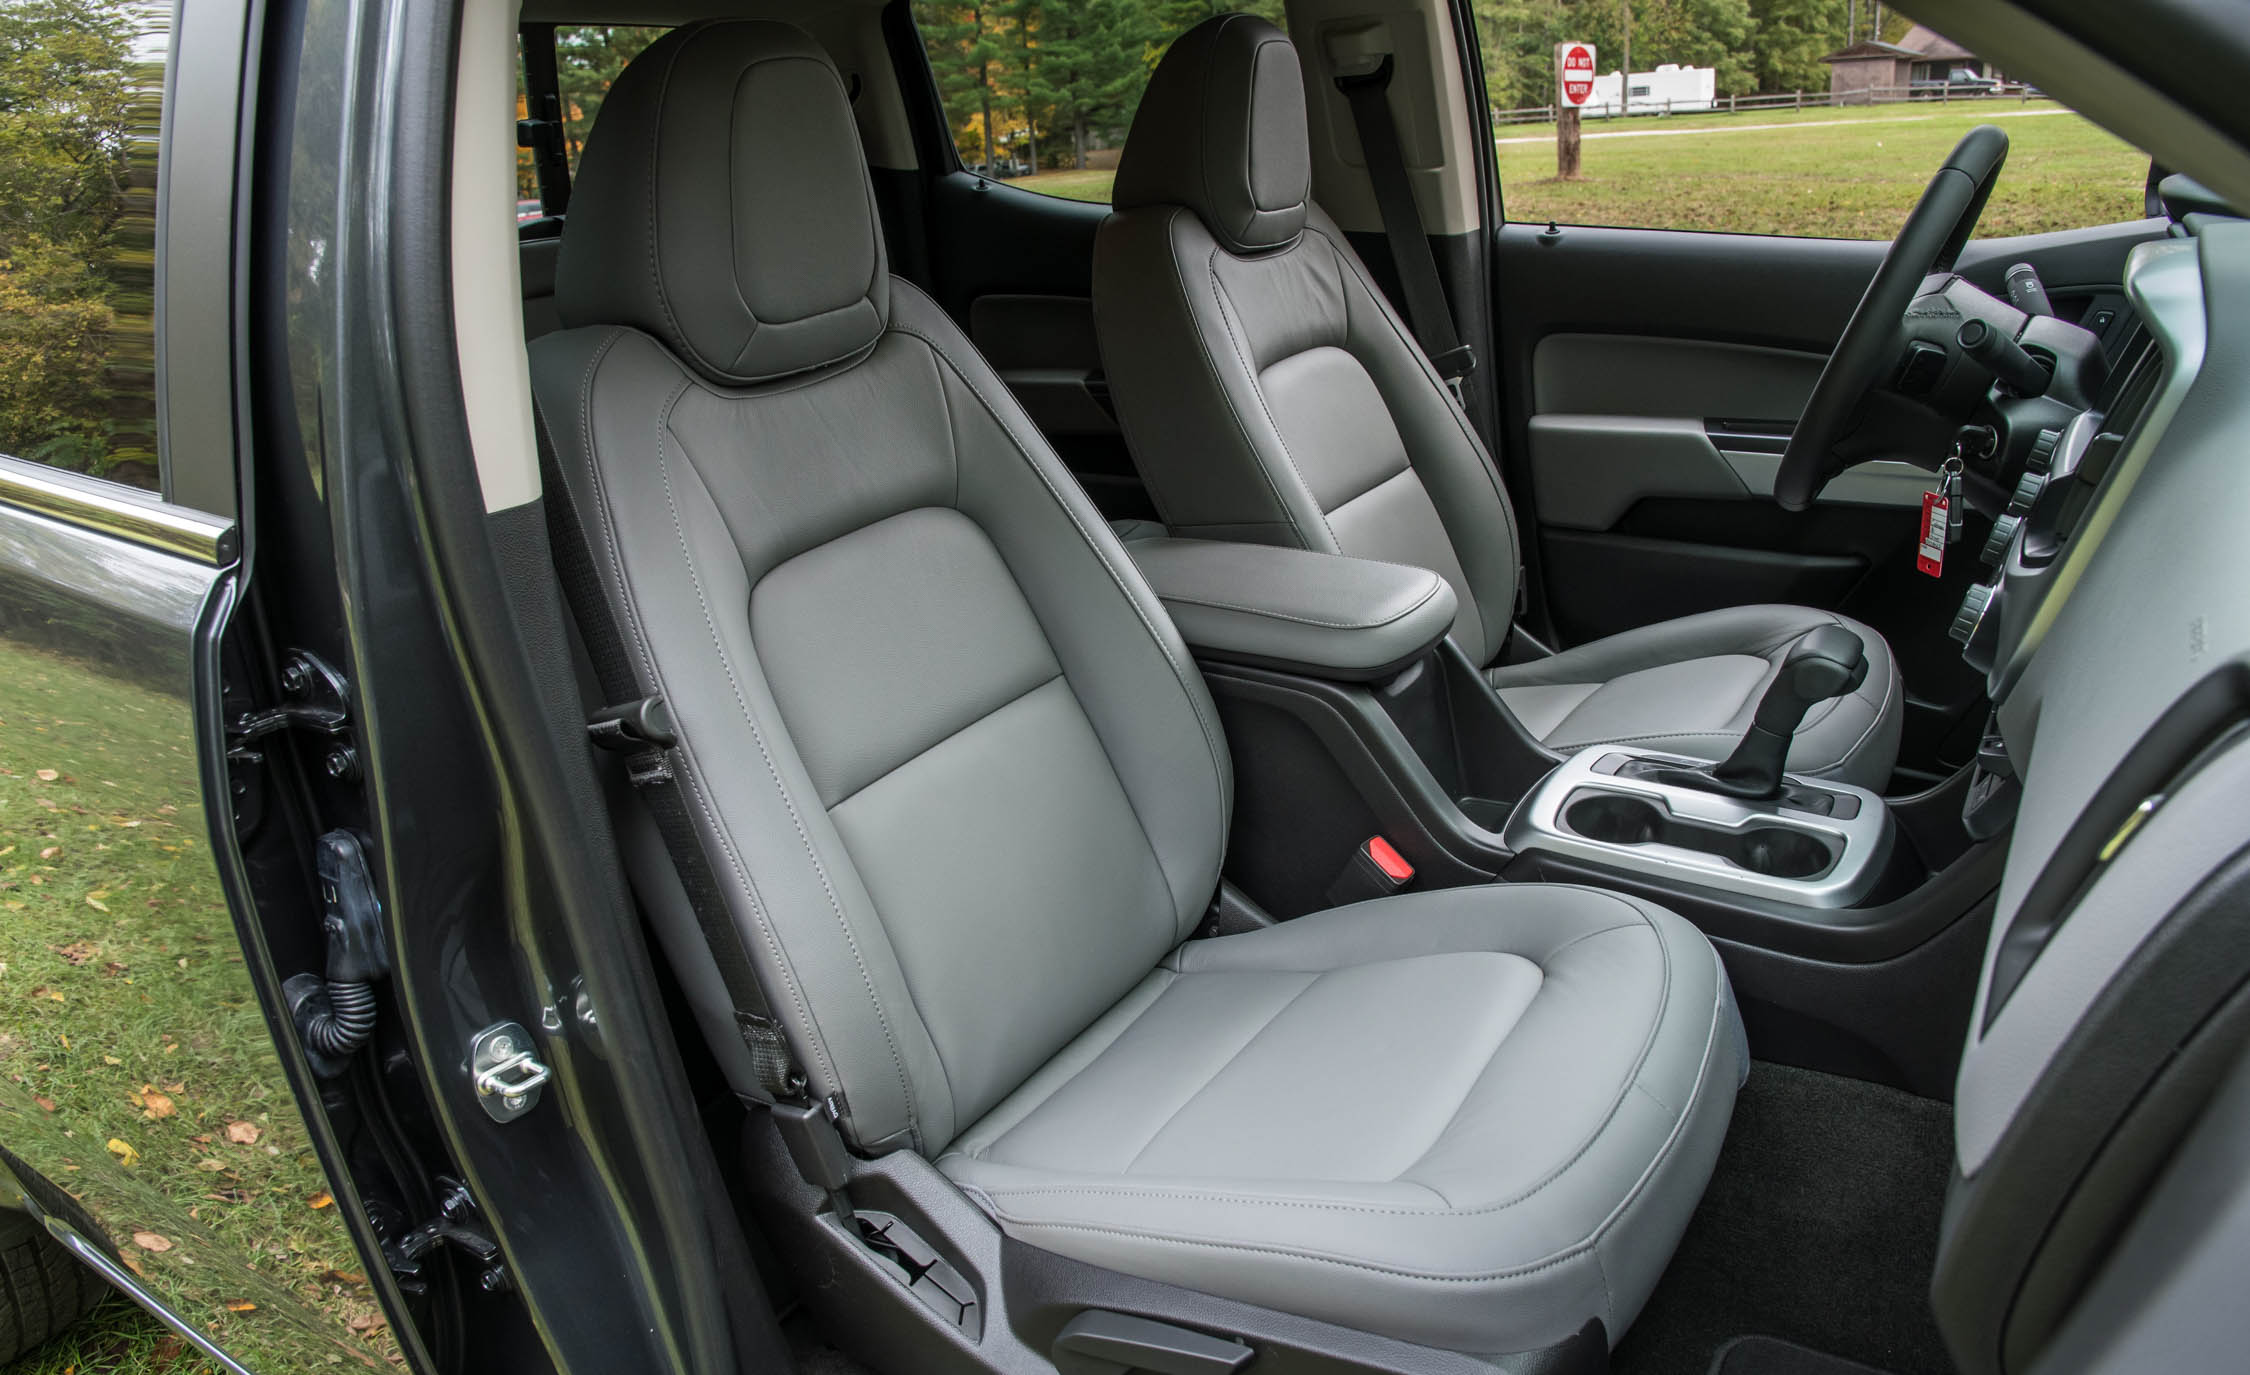 2017 Chevrolet Colorado LT Interior Seats Front (View 12 of 41)